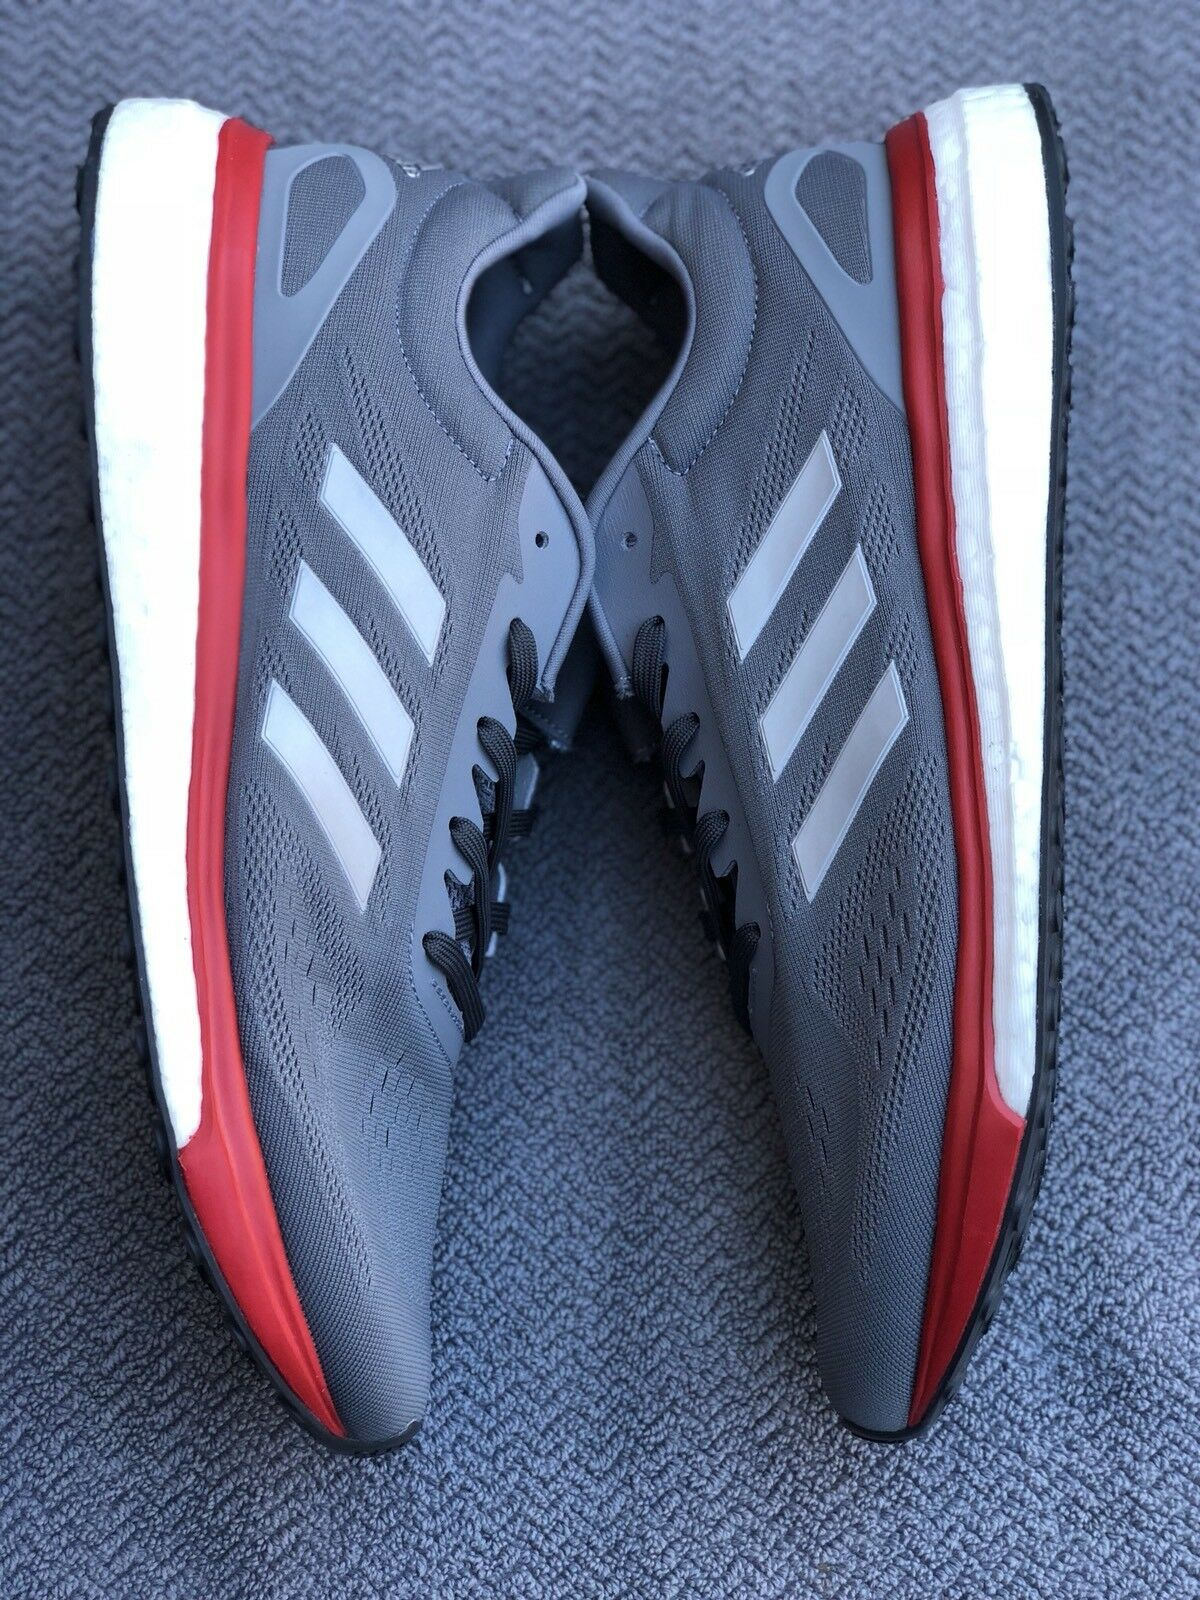 BB3418 Adidas Response Boost LT Mens Running shoes -Size 10